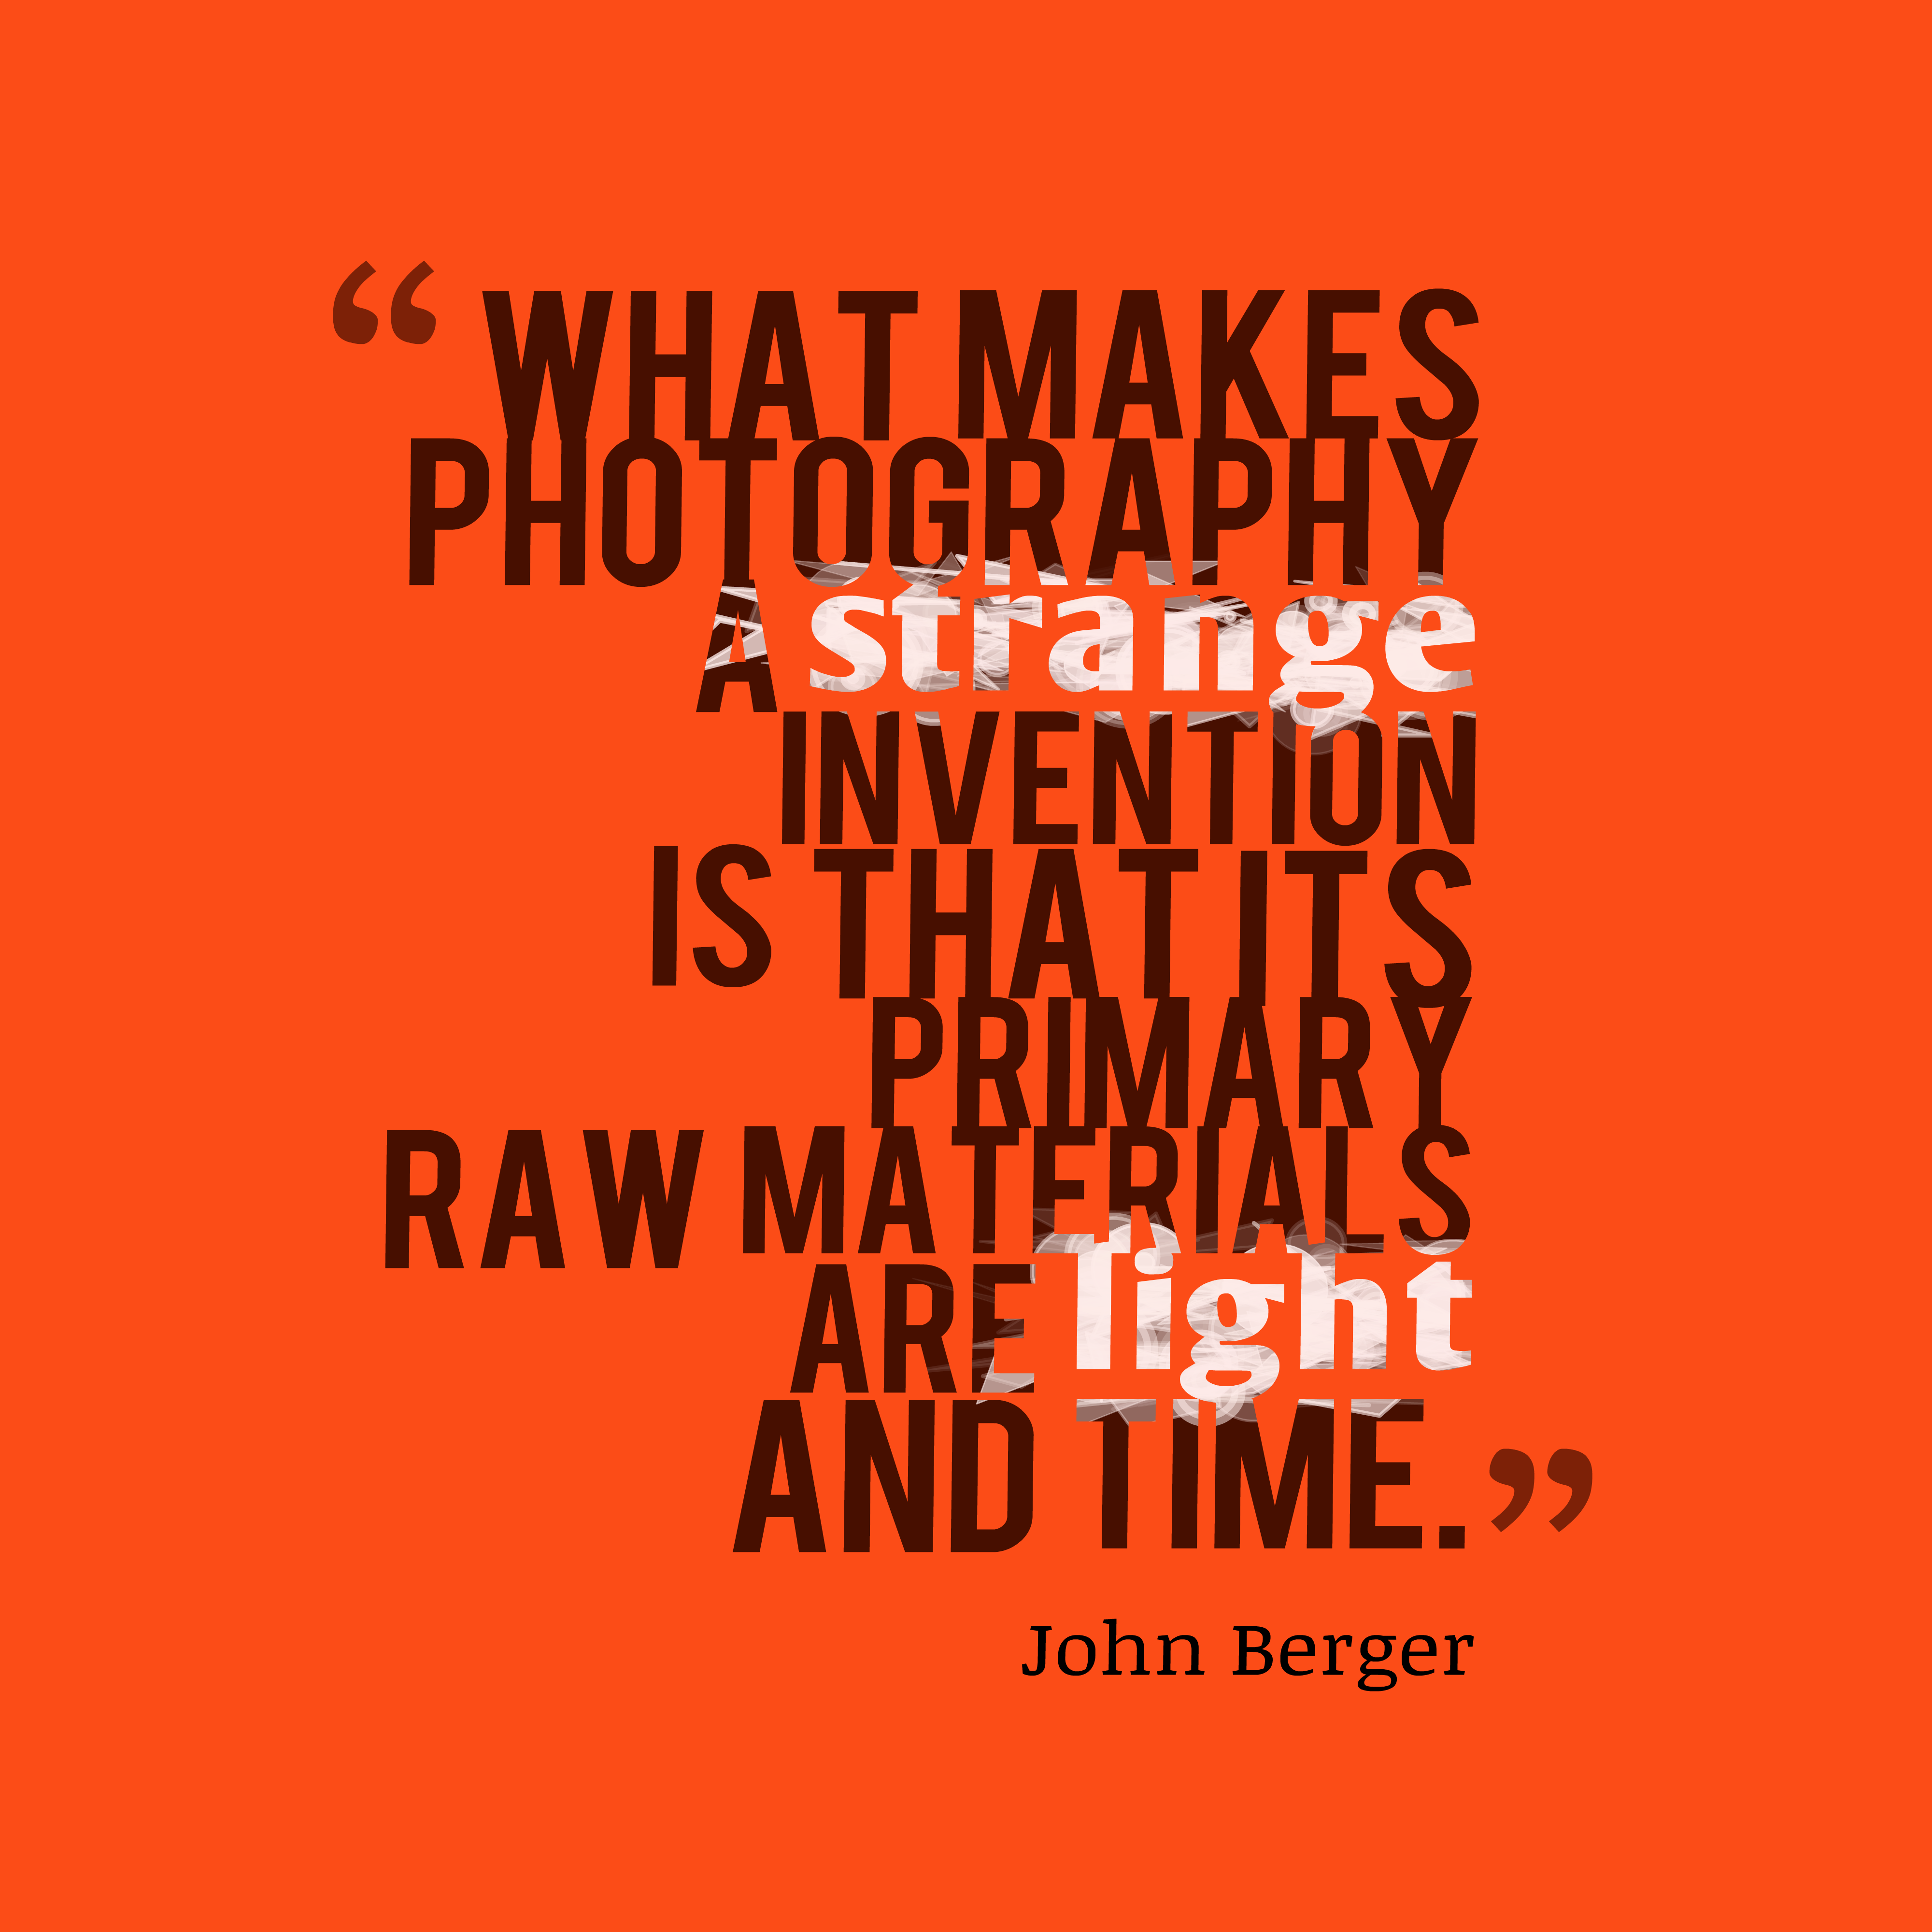 john berger quote about photography